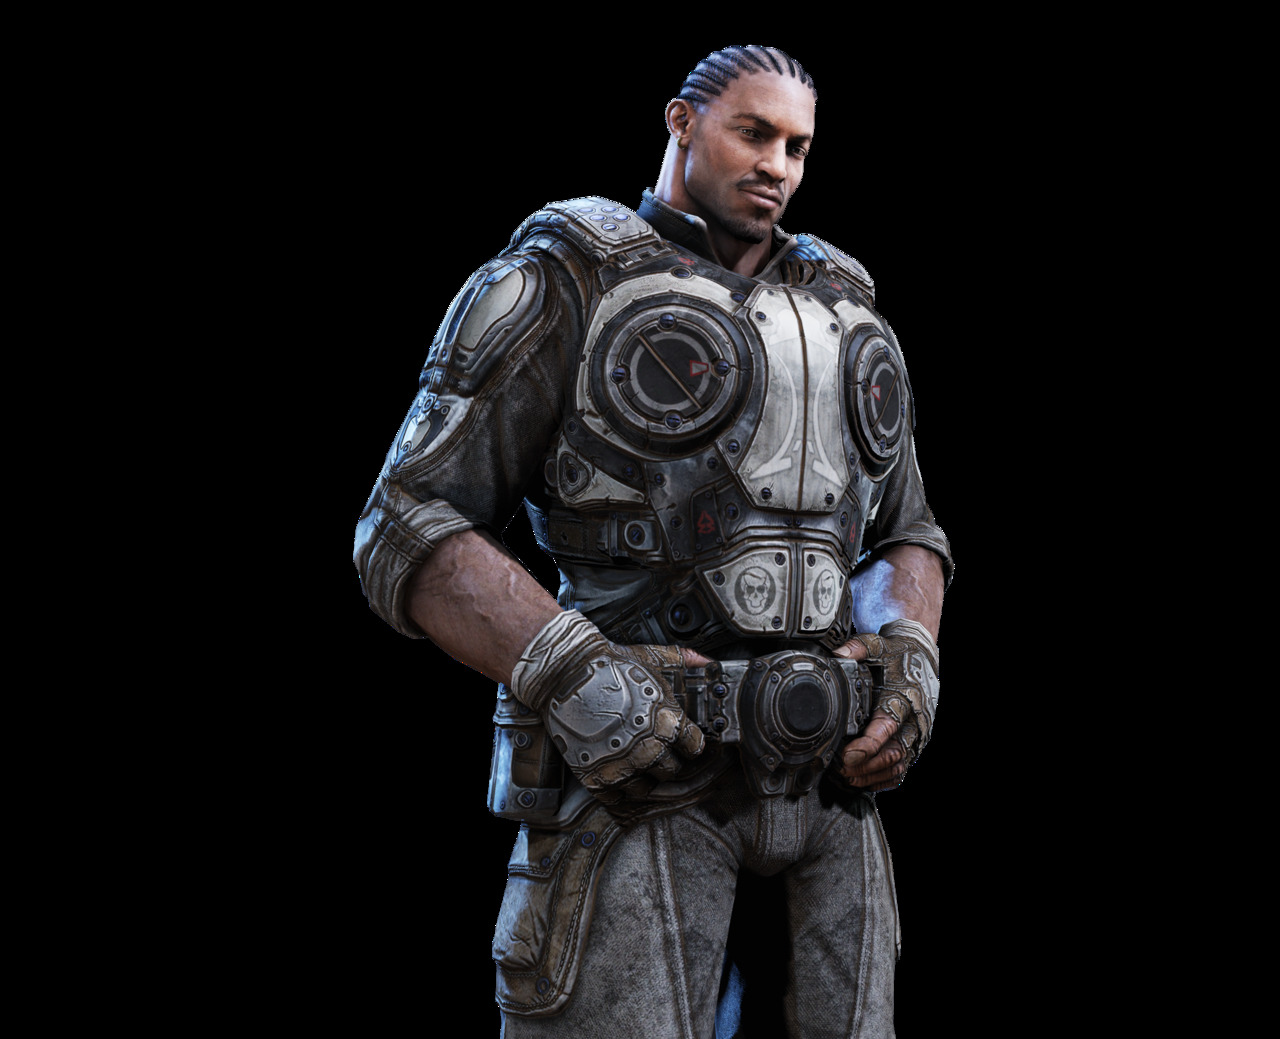 Artworky a screenshoty z Gears of War 3 44672